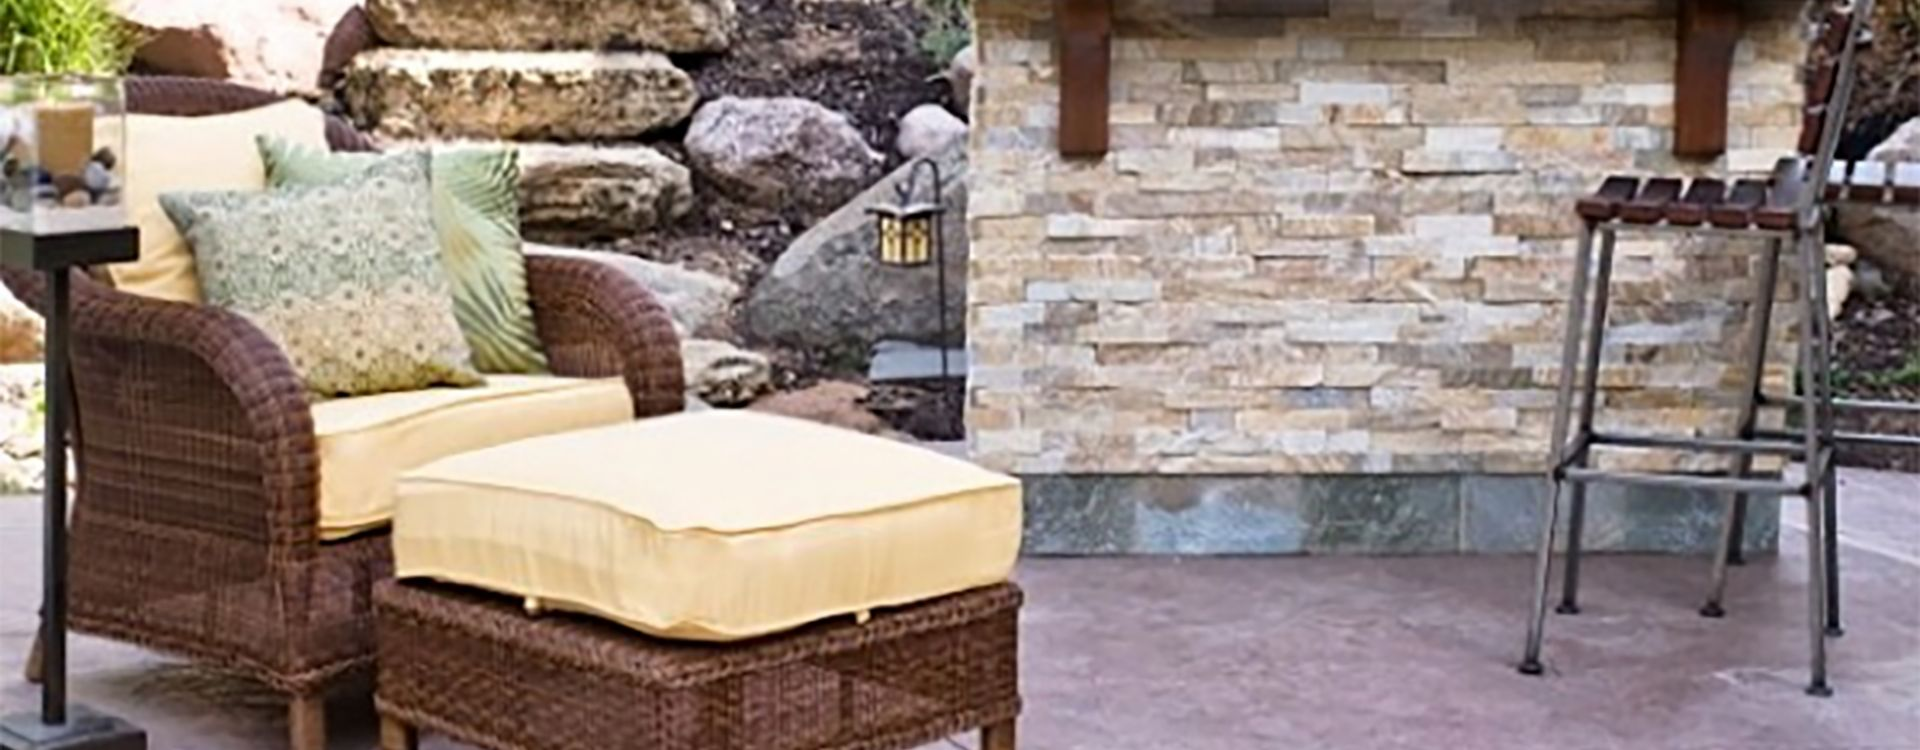 Outdoor Tile Design Ideas The Tile Shop